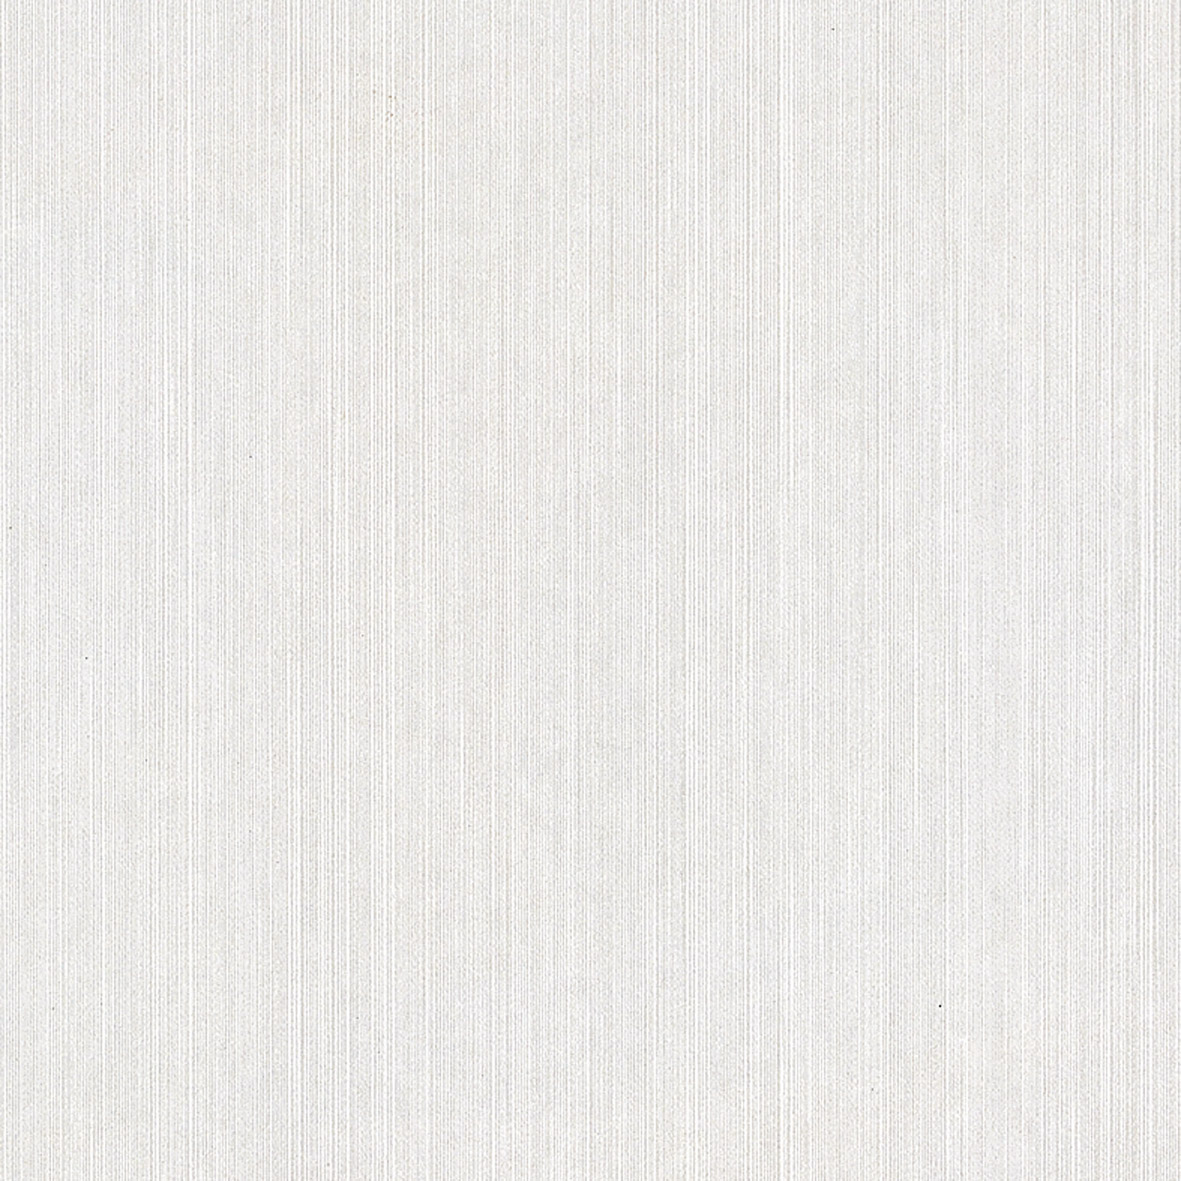 Porcelain Tile | Thin Stone Series - HSLBW6000 | by Hospitality Finishes